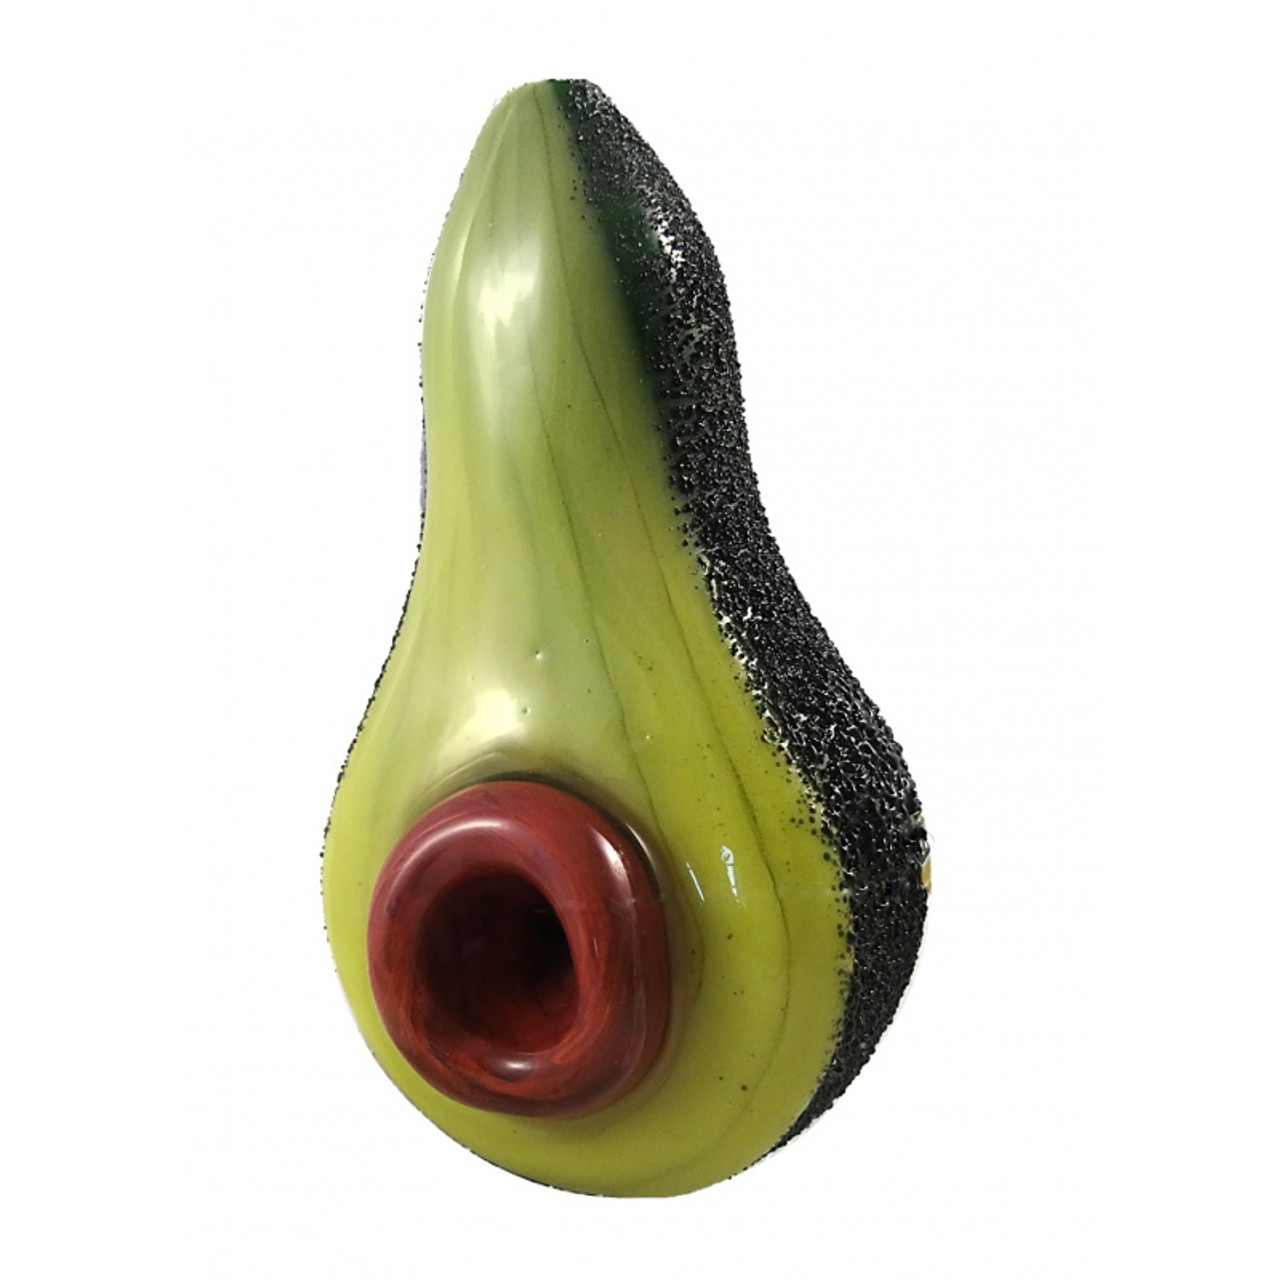 Empire Glassworks - Dry Pipe - Avocado